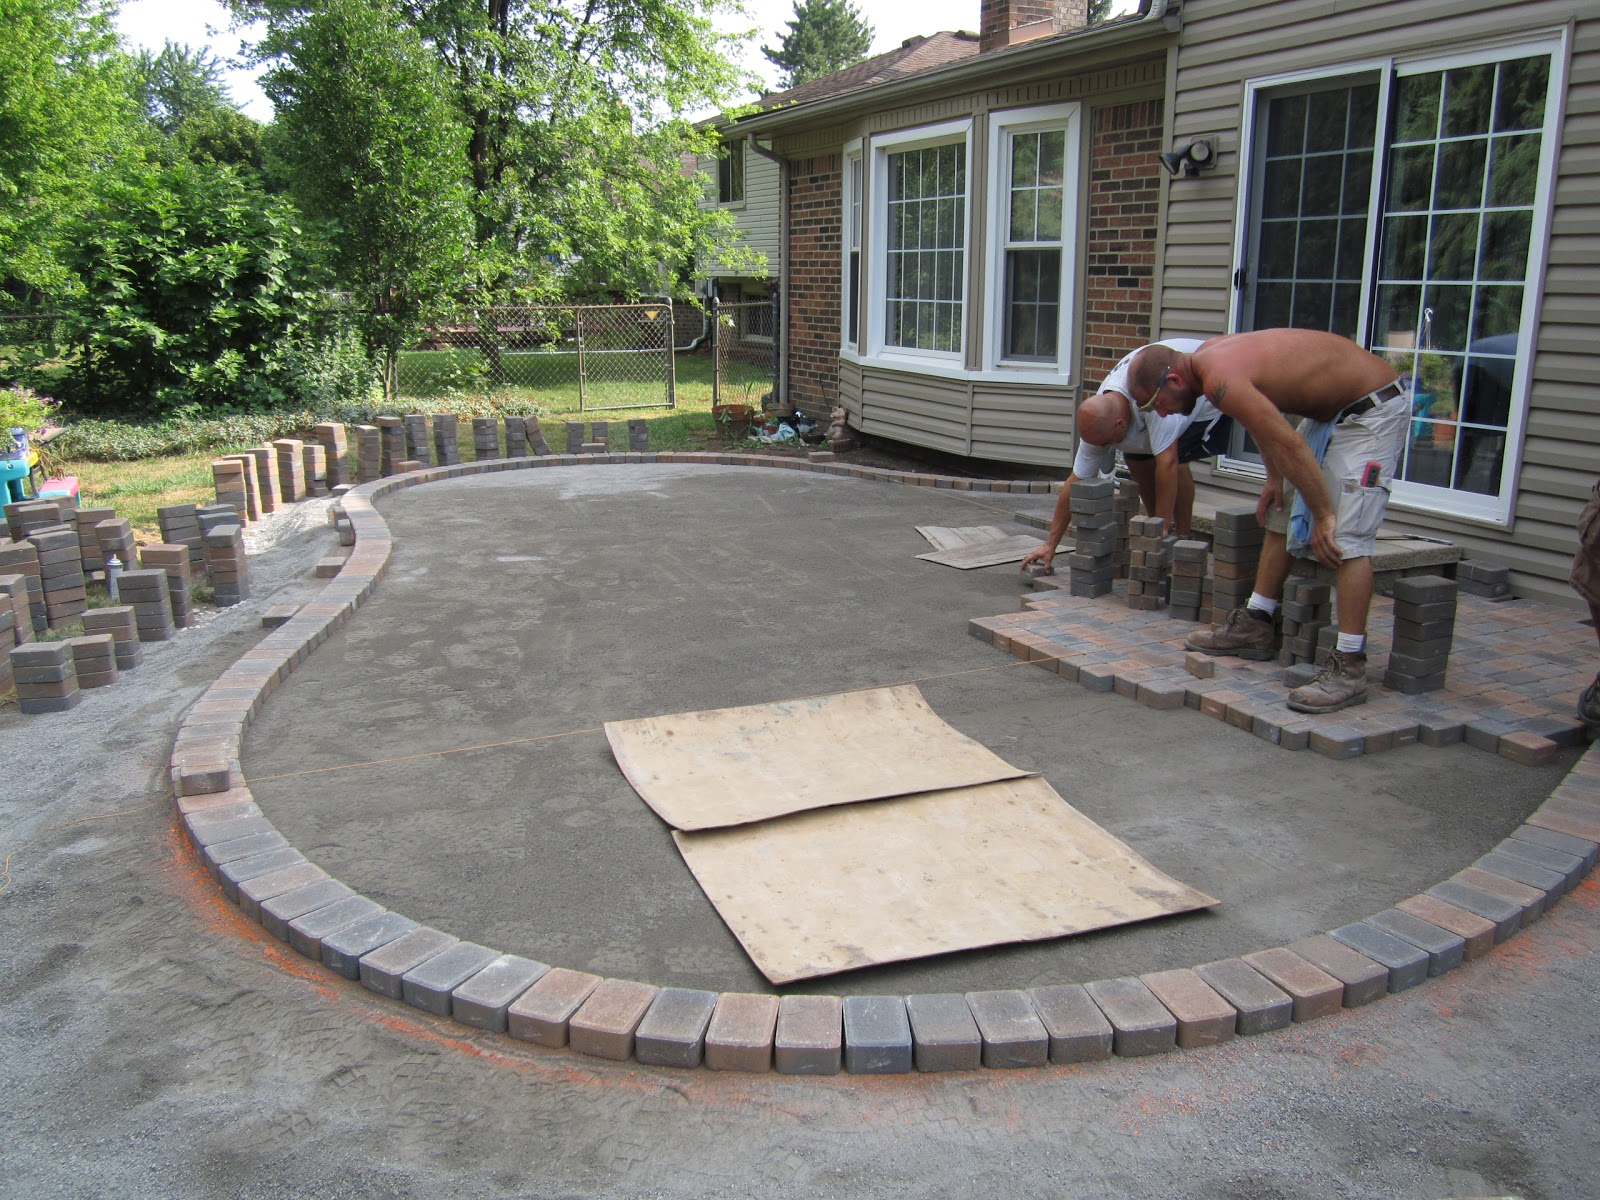 Adding Pavers To Concrete Patio Decorate Paver Paver Seals Brick Paver Clean Brick Clean Brick Paver Patio